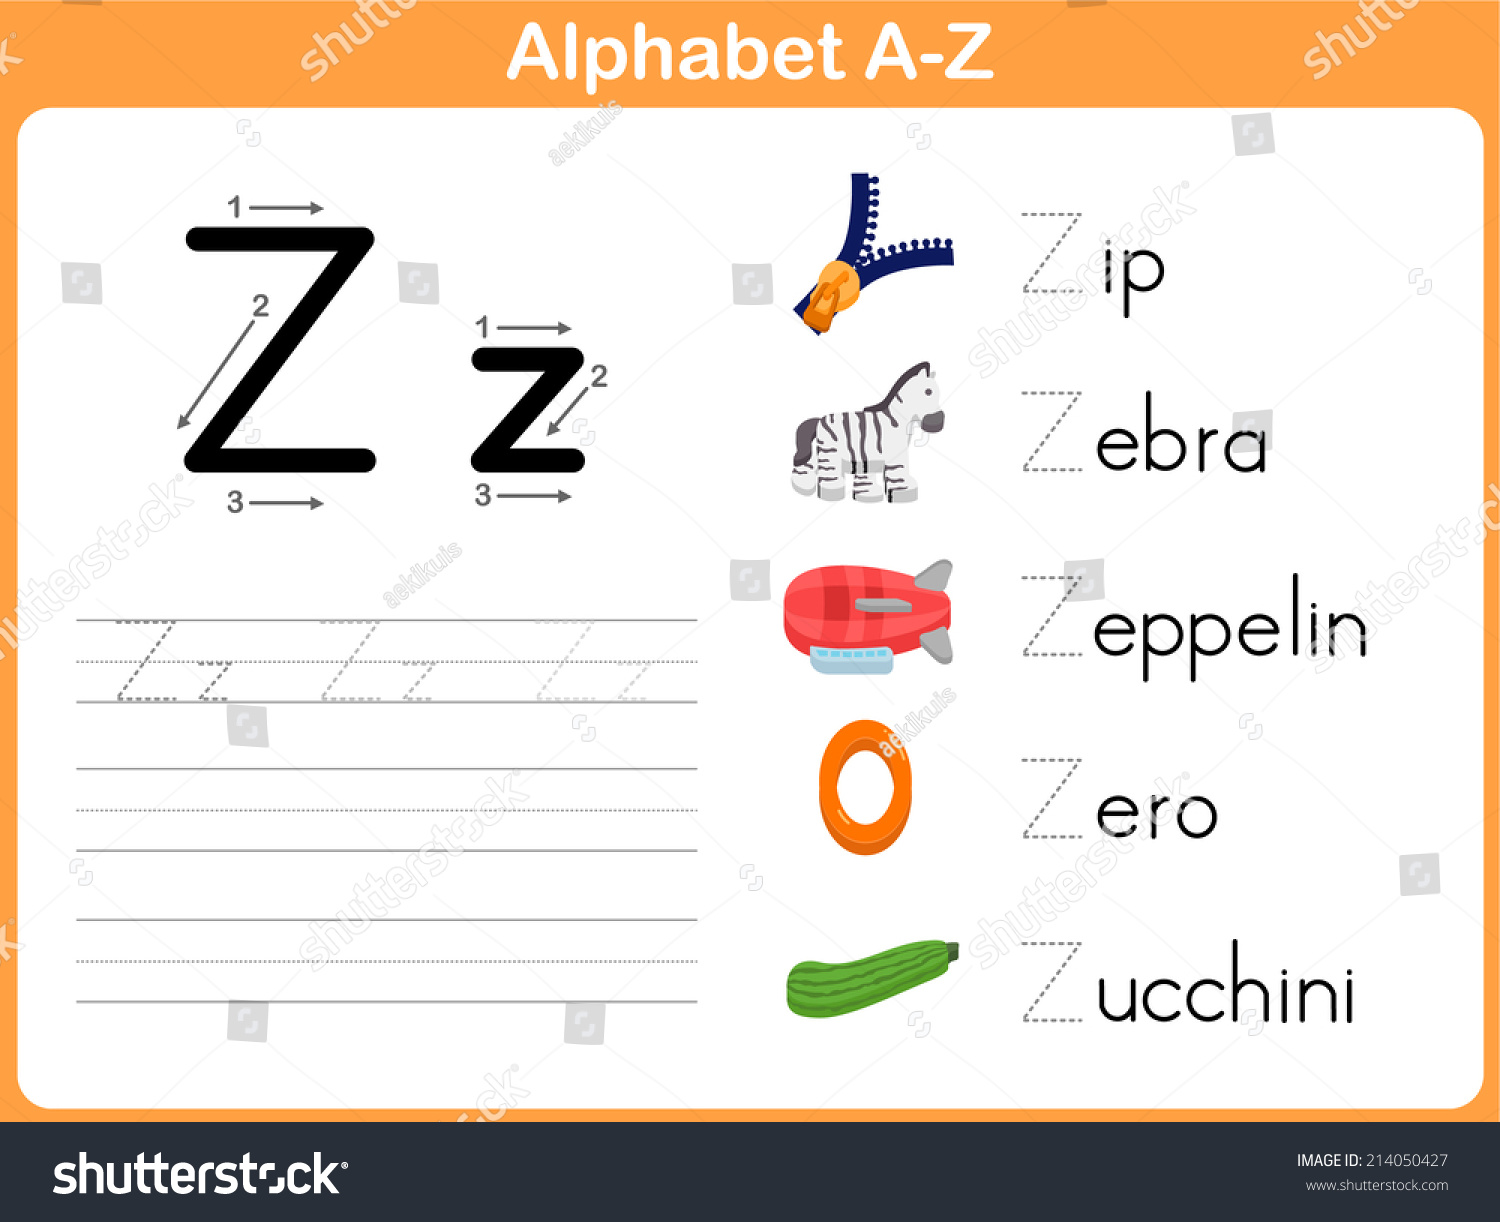 Pictures Alphabet Tracing Worksheets A Z - Beatlesblogcarnival worksheets for teachers, printable worksheets, multiplication, free worksheets, and math worksheets Tracing Letters A Z Worksheet 1222 x 1500